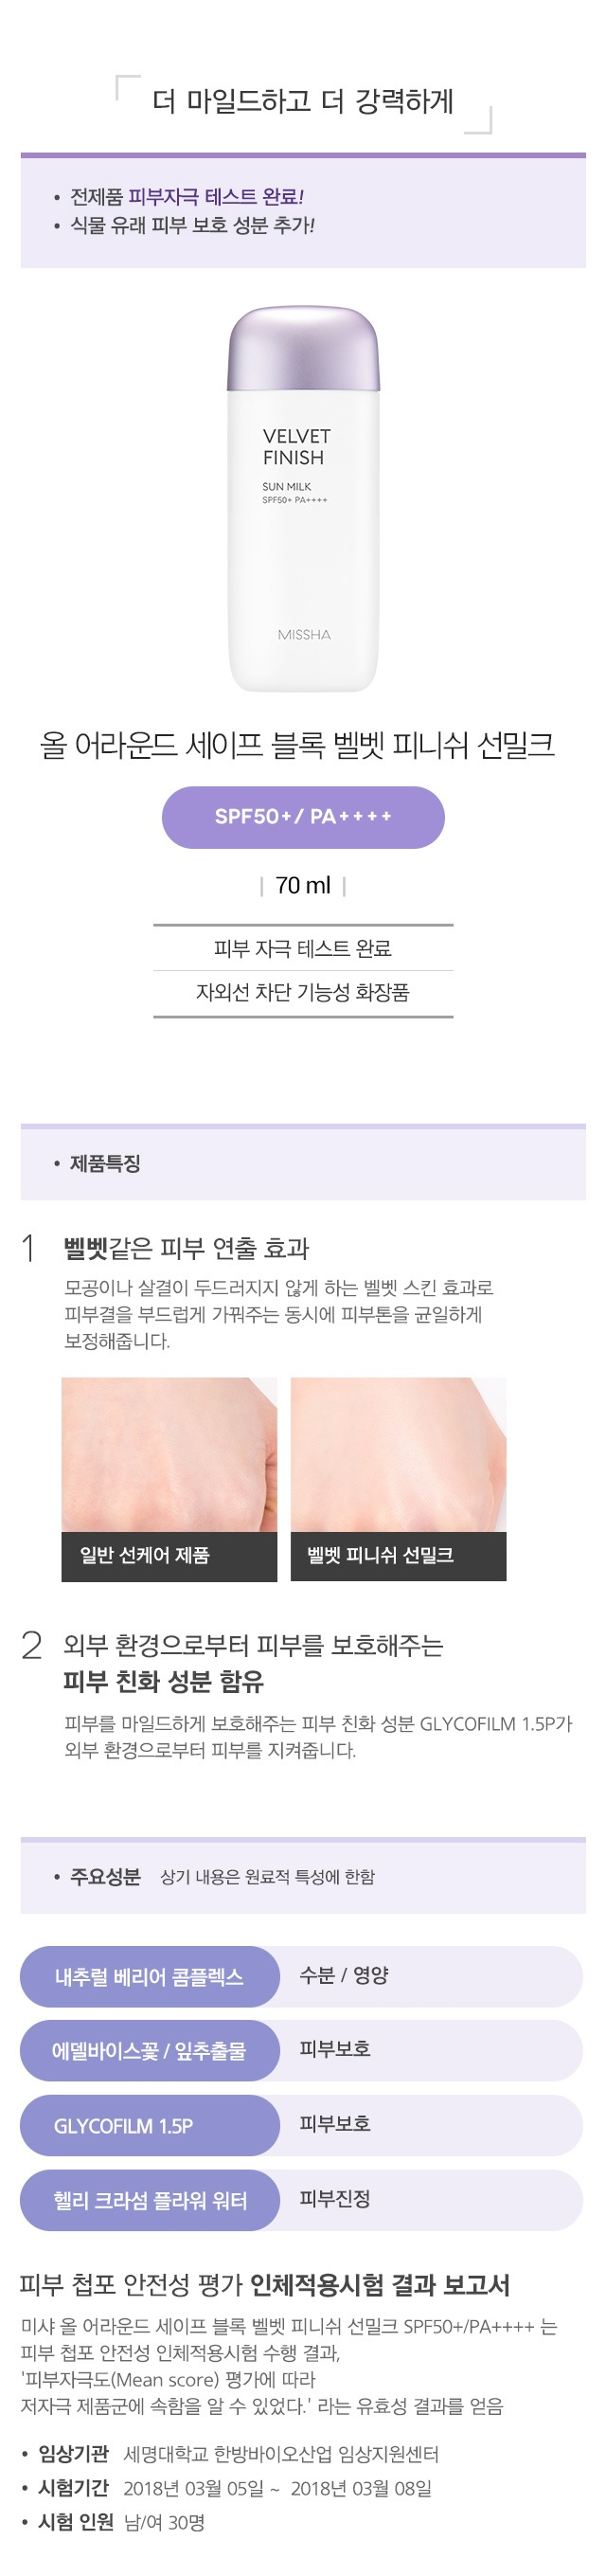 Missha Velvet Finish Sun Milk korean cosmetic suncarw product online shop malaysia usa uk1